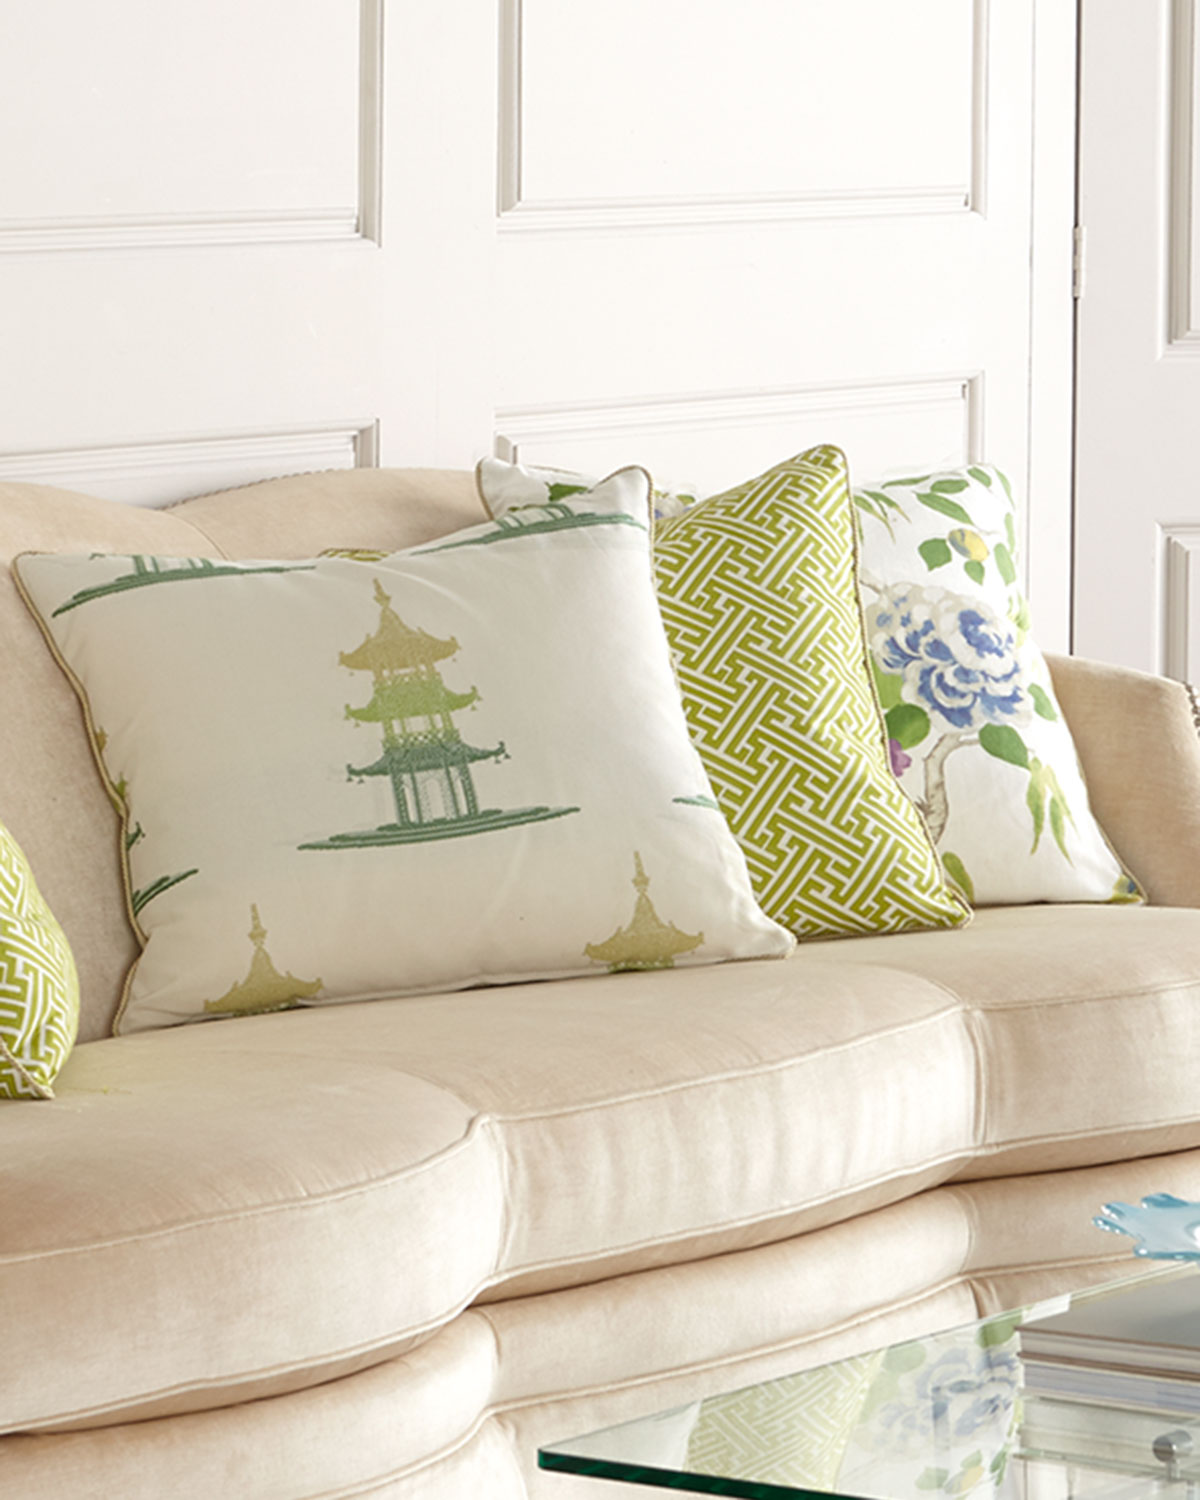 Five-Piece Spring Pillow Set, Green Floral - Massoud